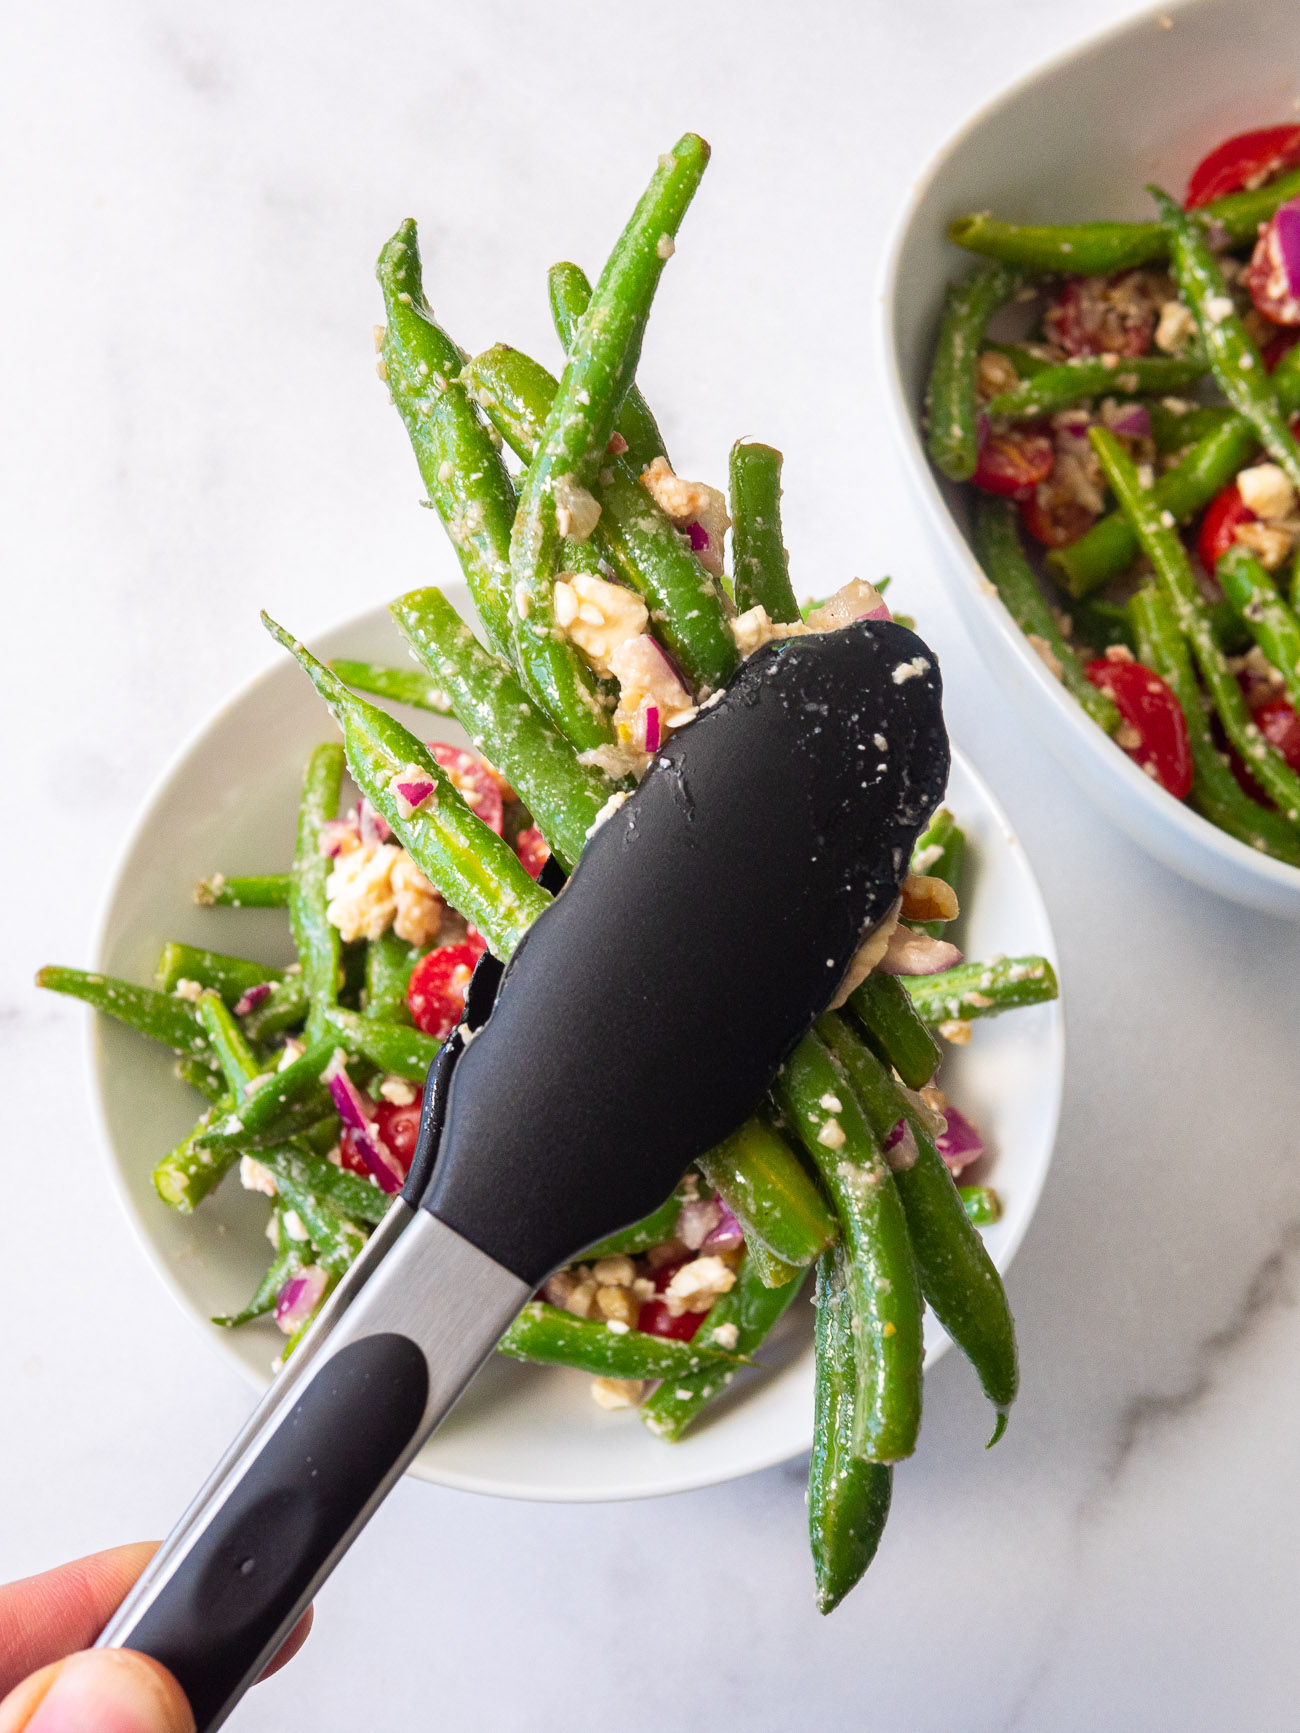 Tongs holding green bean salad over a serving dish